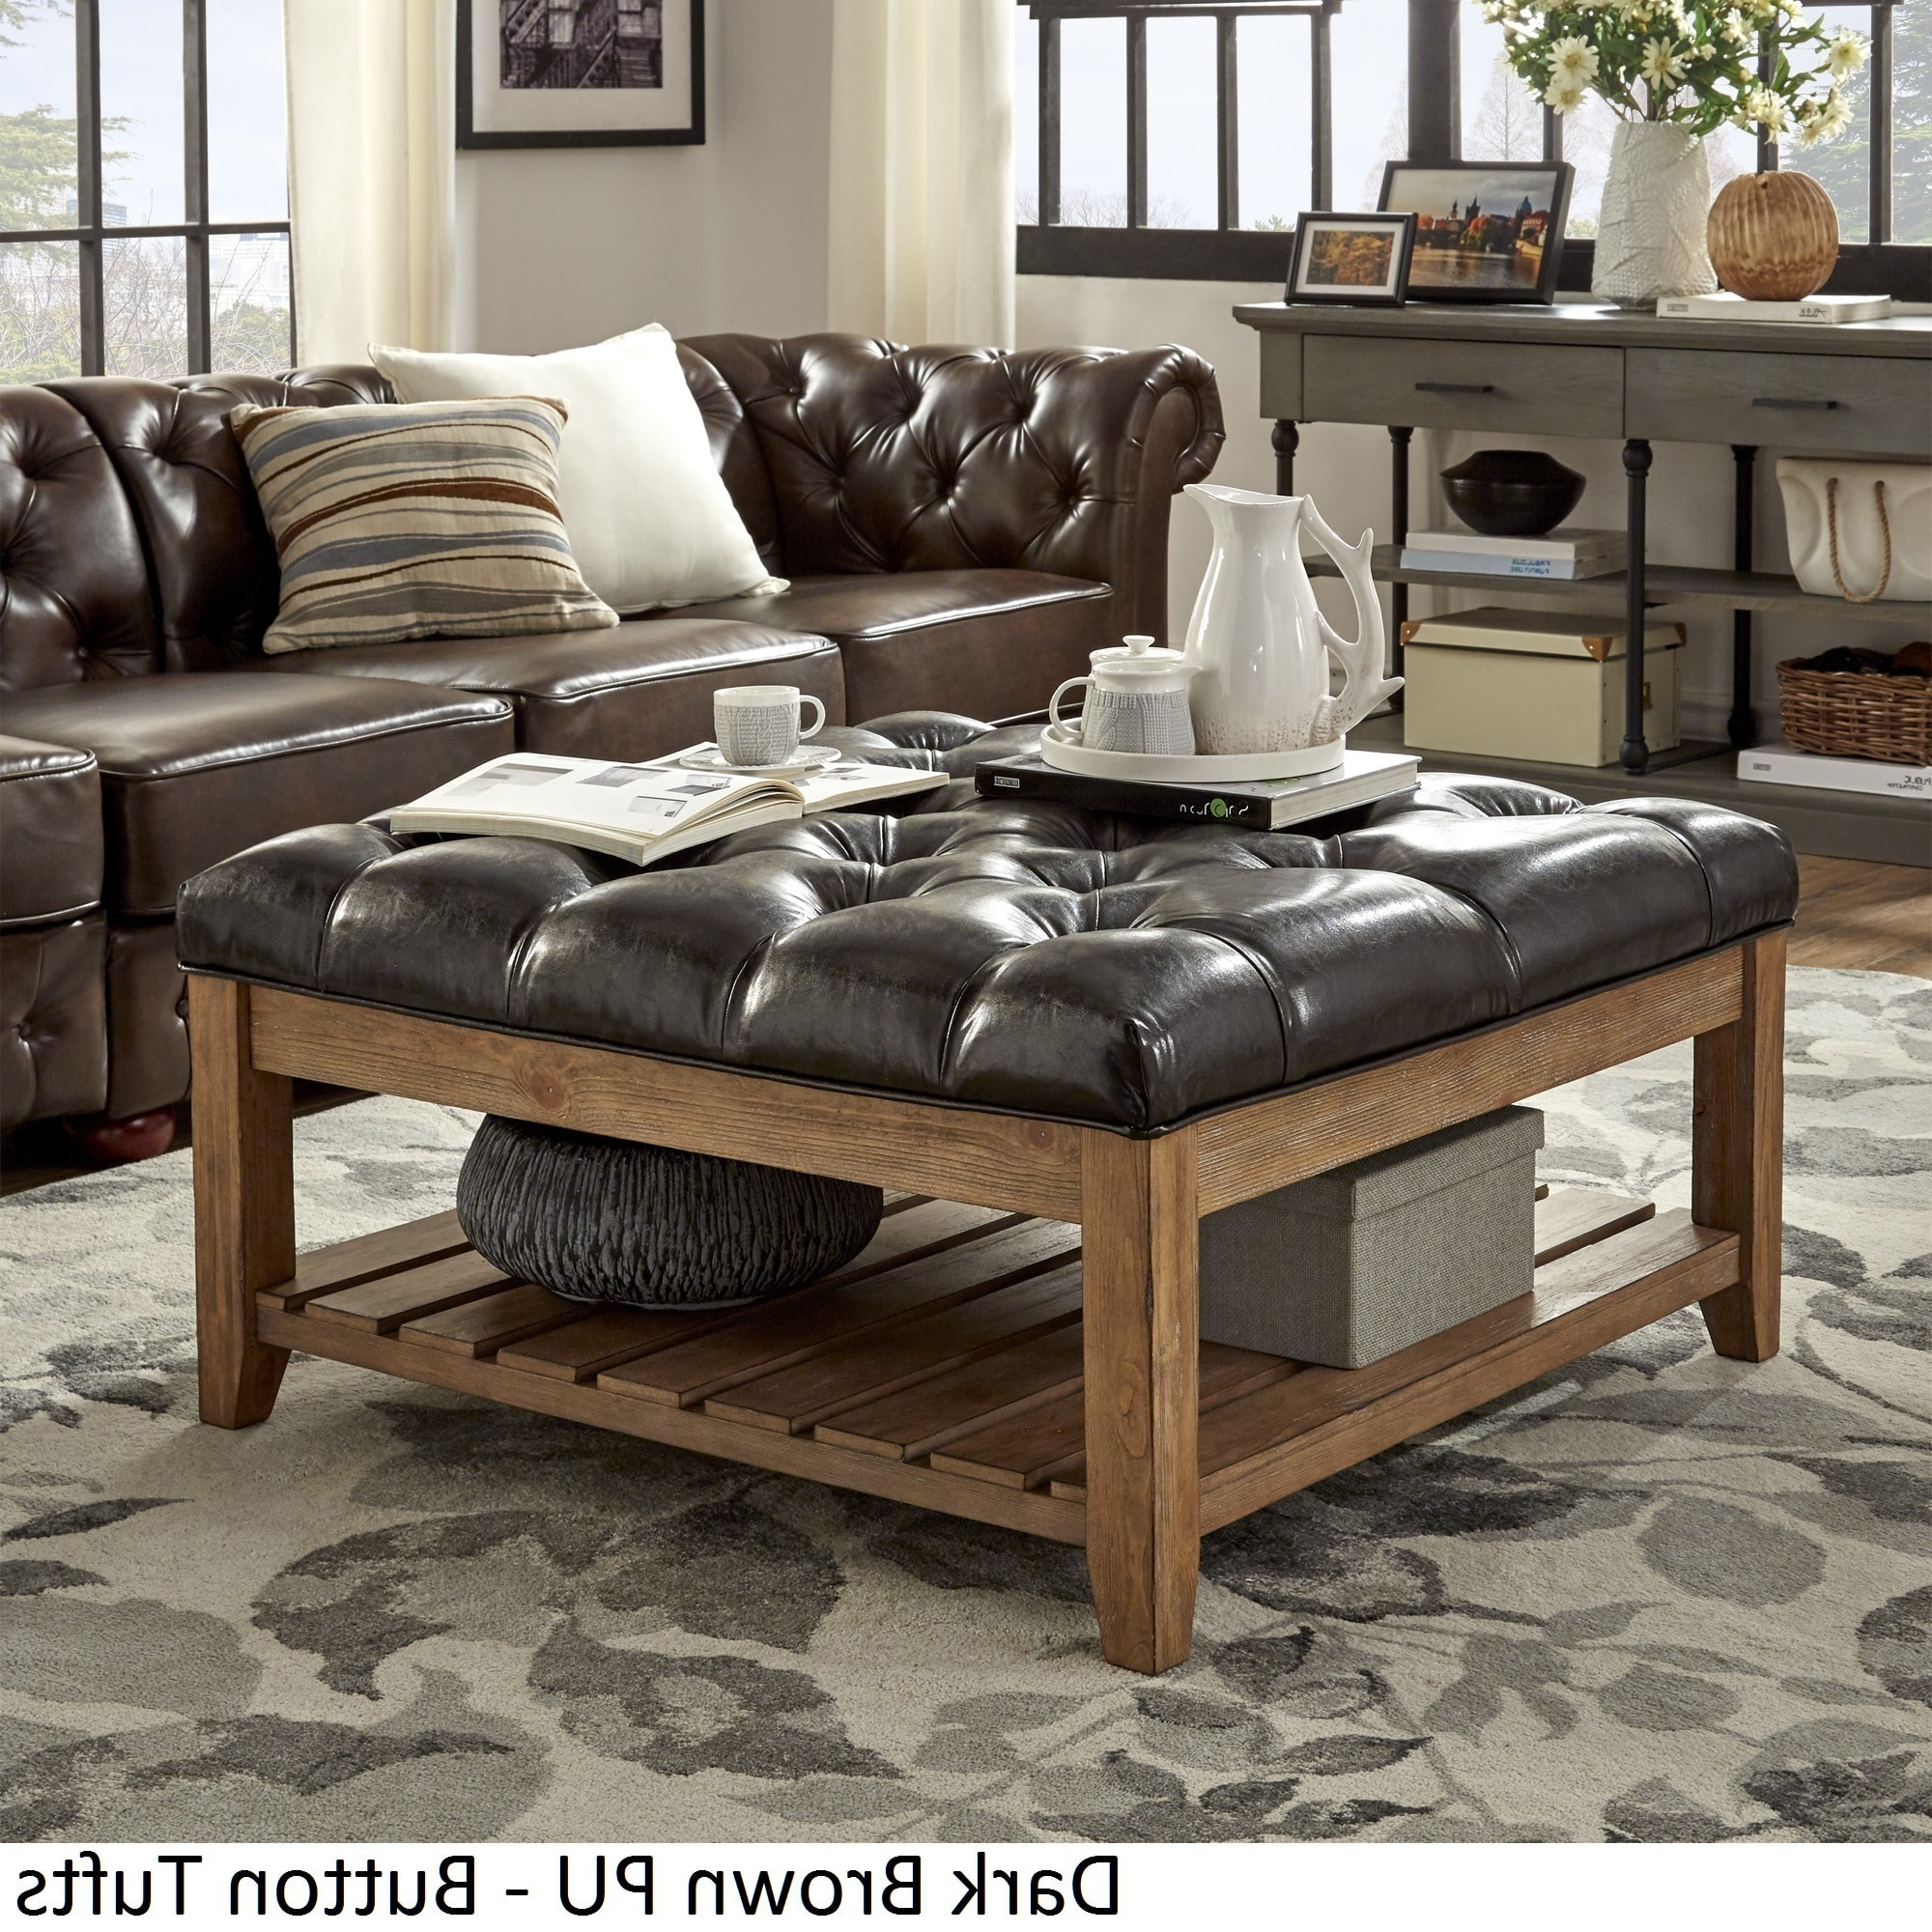 Preferred Lennon Pine Planked Storage Ottoman Coffee Tables Within Inspire Q Lennon Pine Planked Storage Ottoman Coffee Table (View 13 of 20)